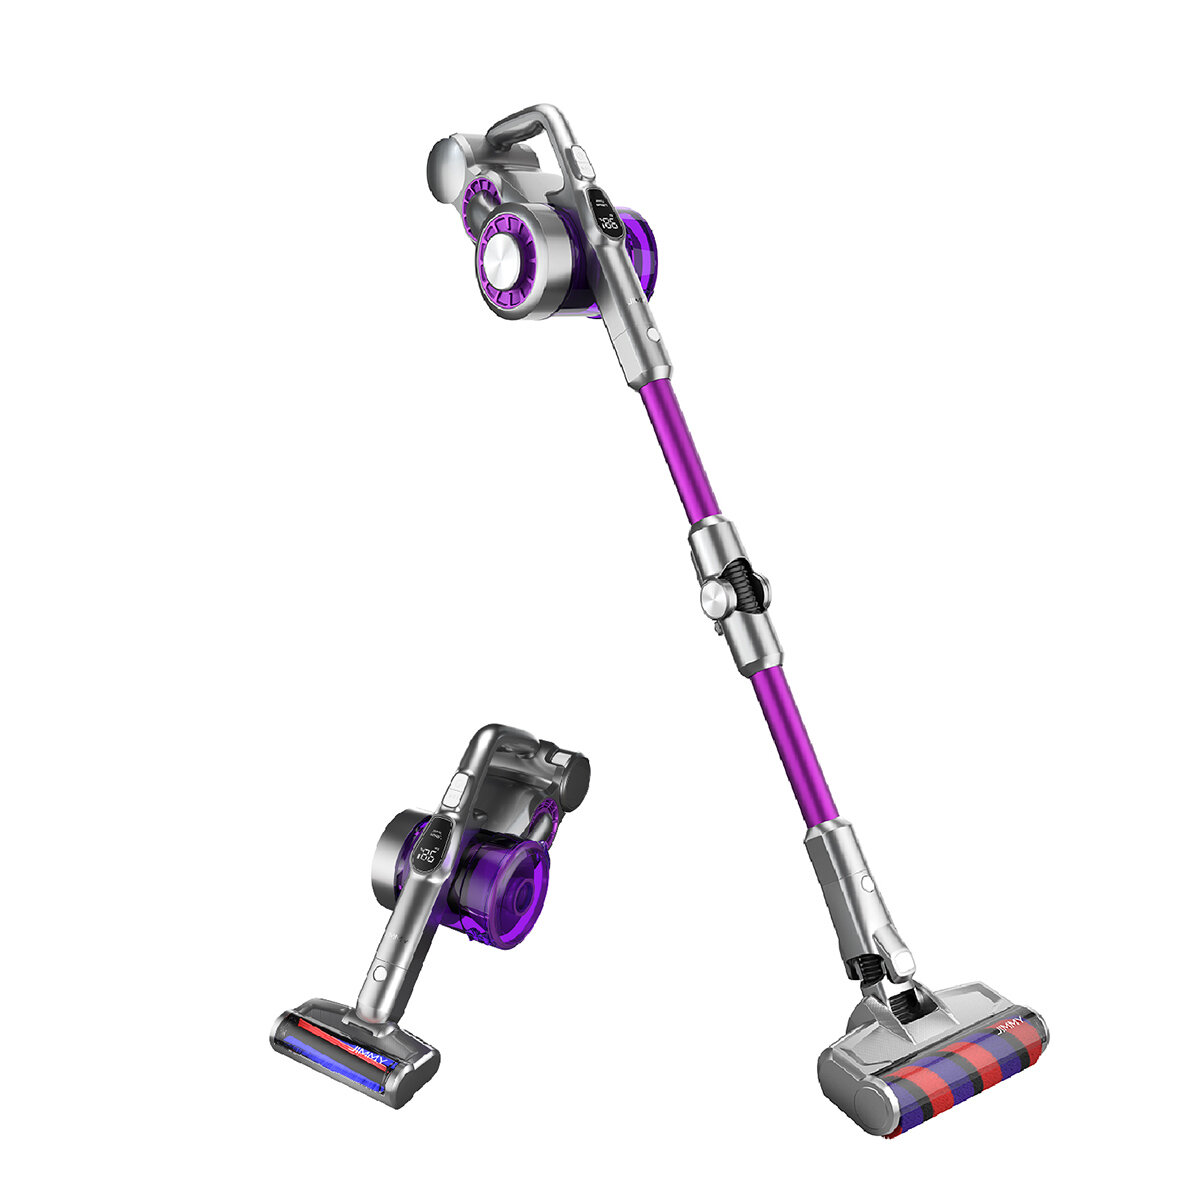 JIMMY JV85 Pro Cordless Flexible Handheld Vacuum Cleaner 24000Pa Suction, 200AW Strong Suction 70 Minutes Run Time LED Display Anti-winding